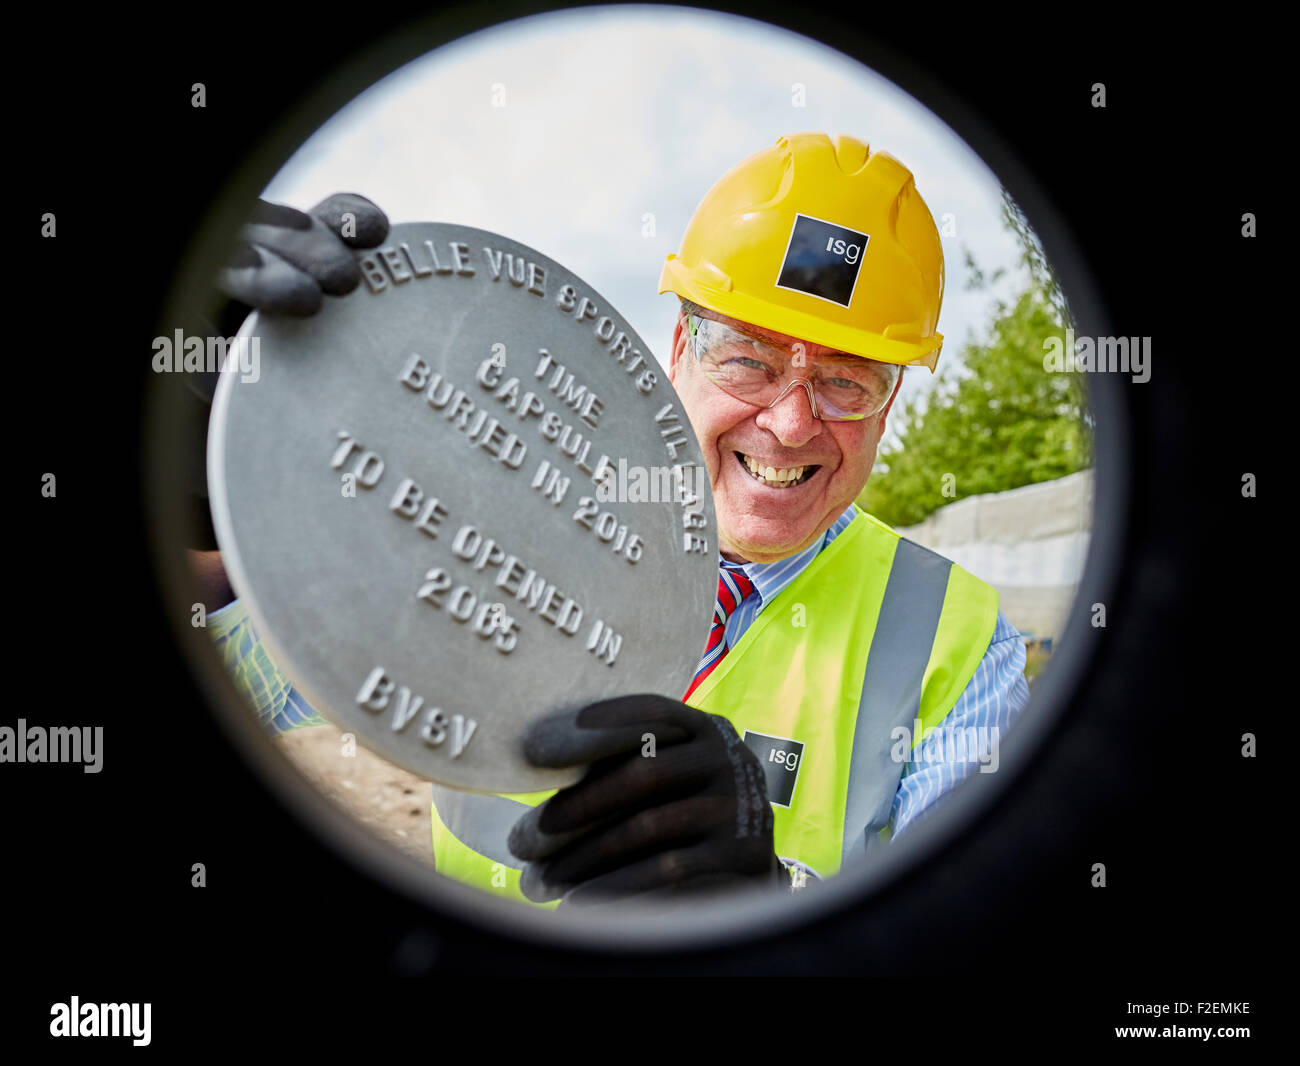 David Gordon, CEO Belle Vue Aces with Time capsule burial. Stock Photo